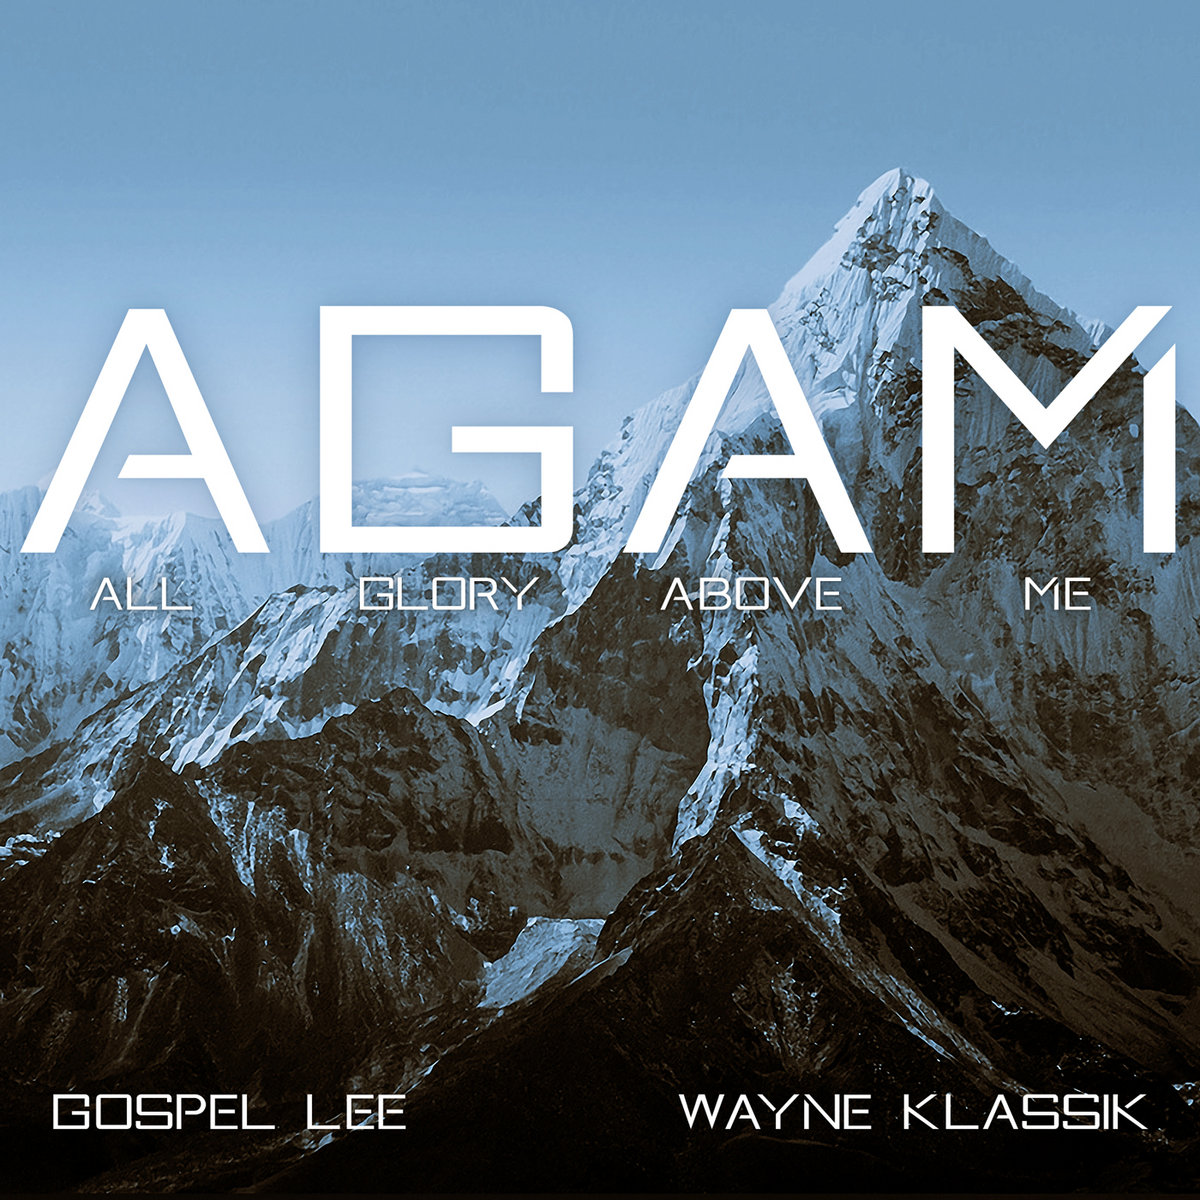 A.G.A.M. by gospel lee